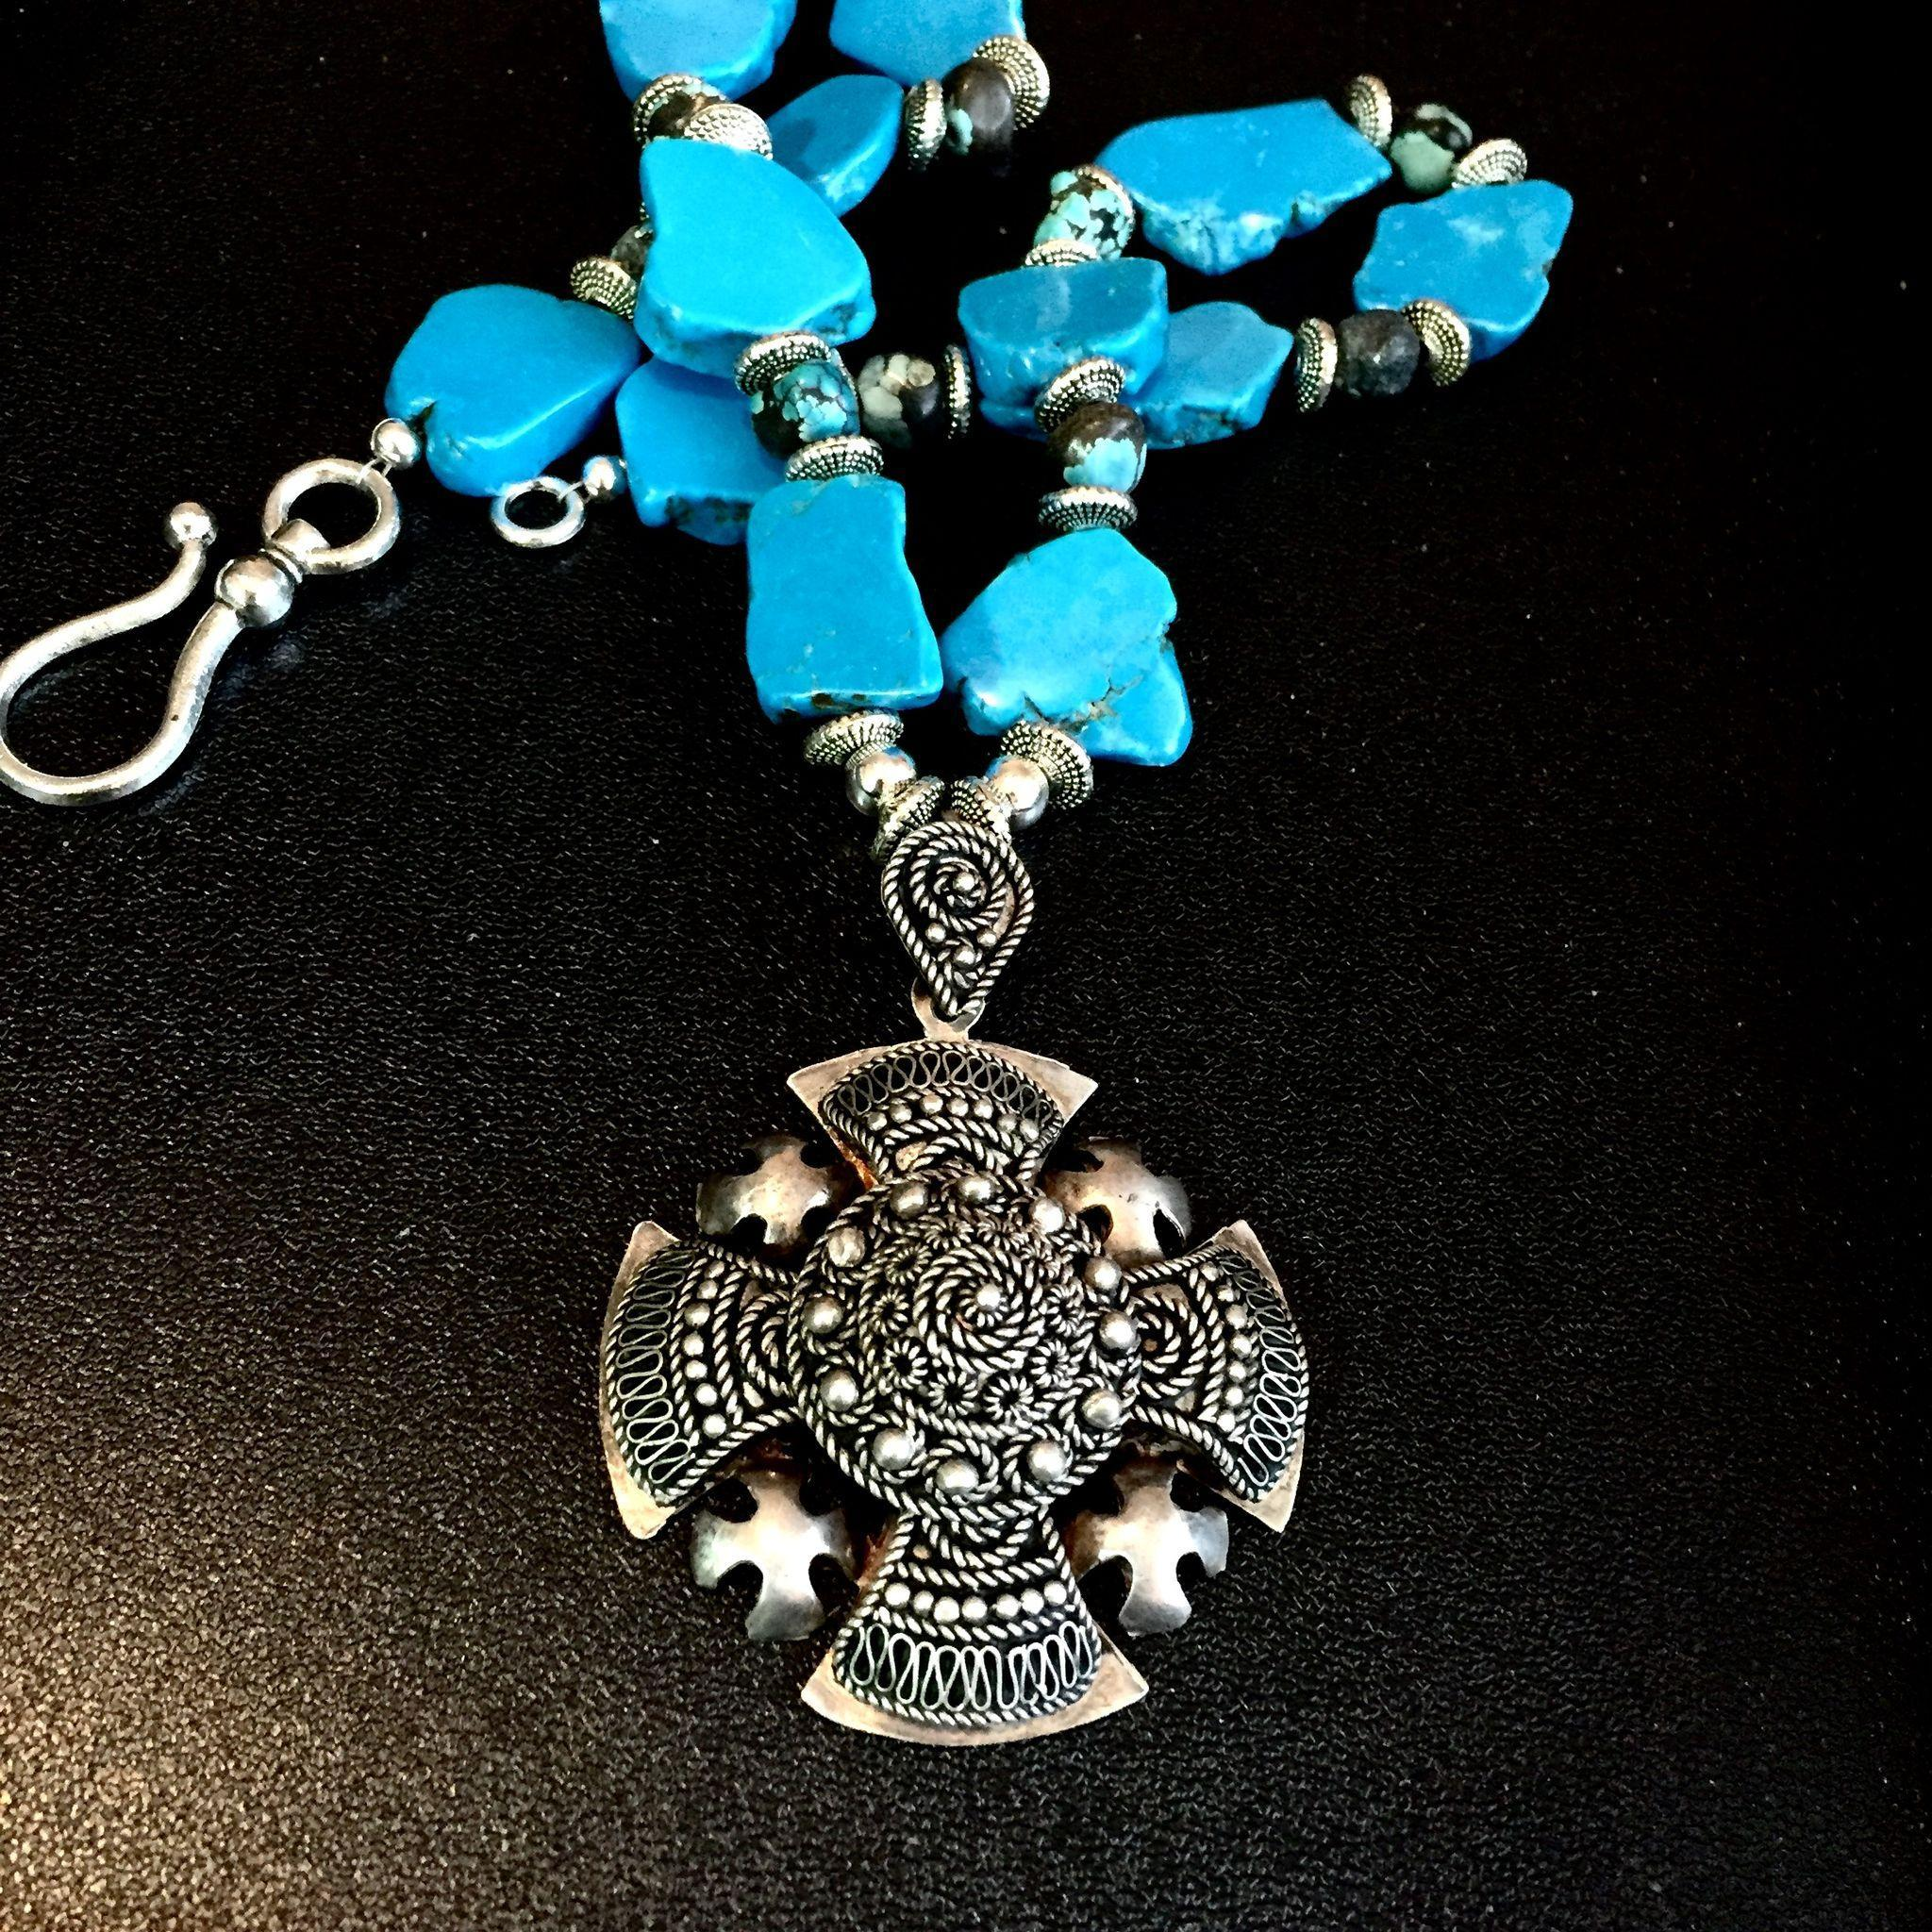 Turquoise Necklace with Vintage Sterling Jerusalem Cross, 17-7/8 Inches